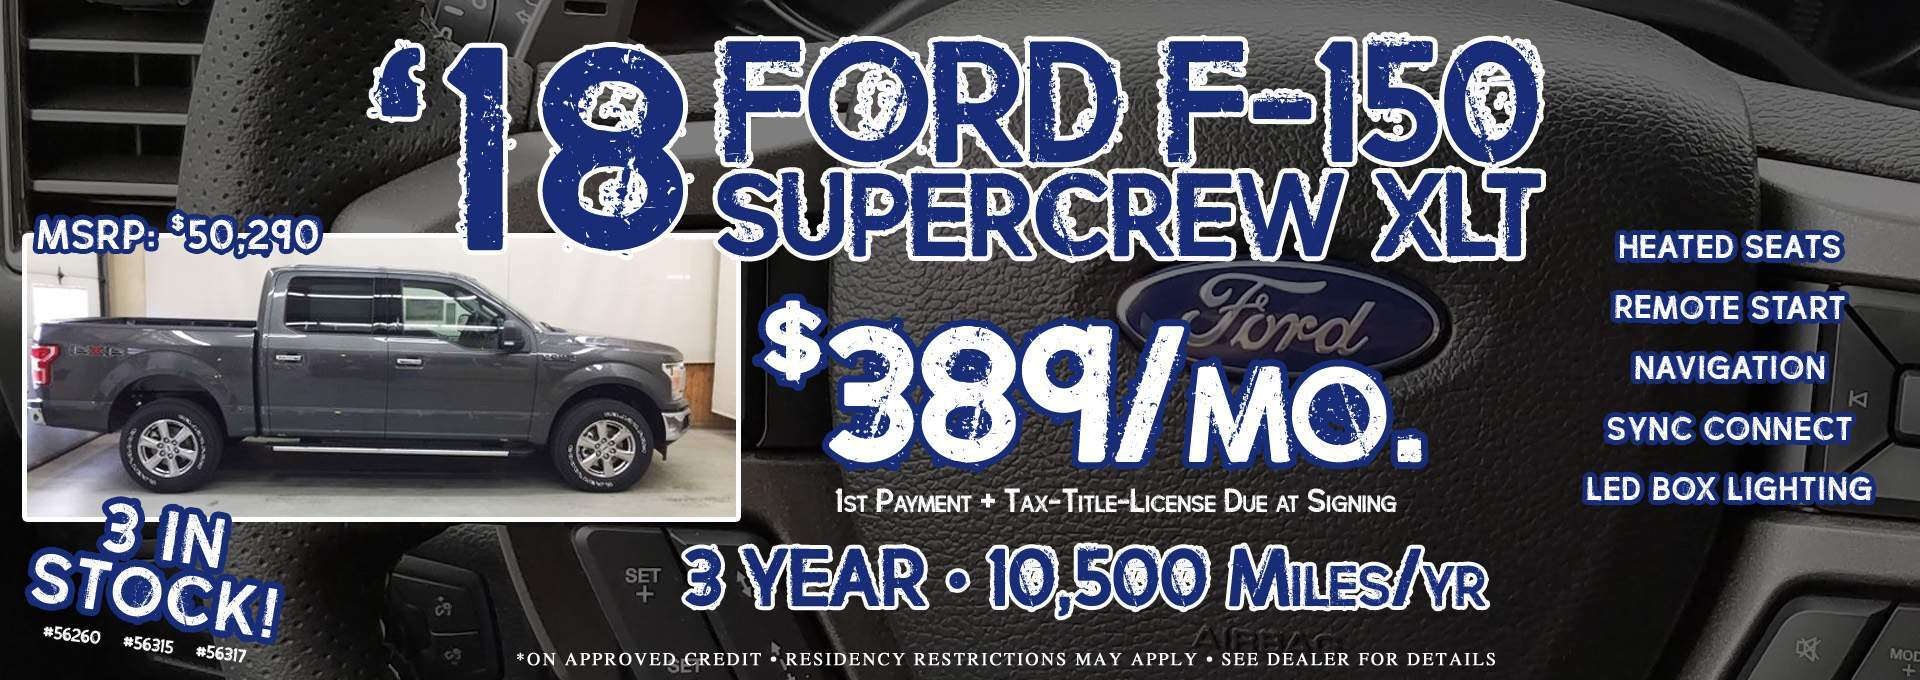 2018 Ford F-150 Lease